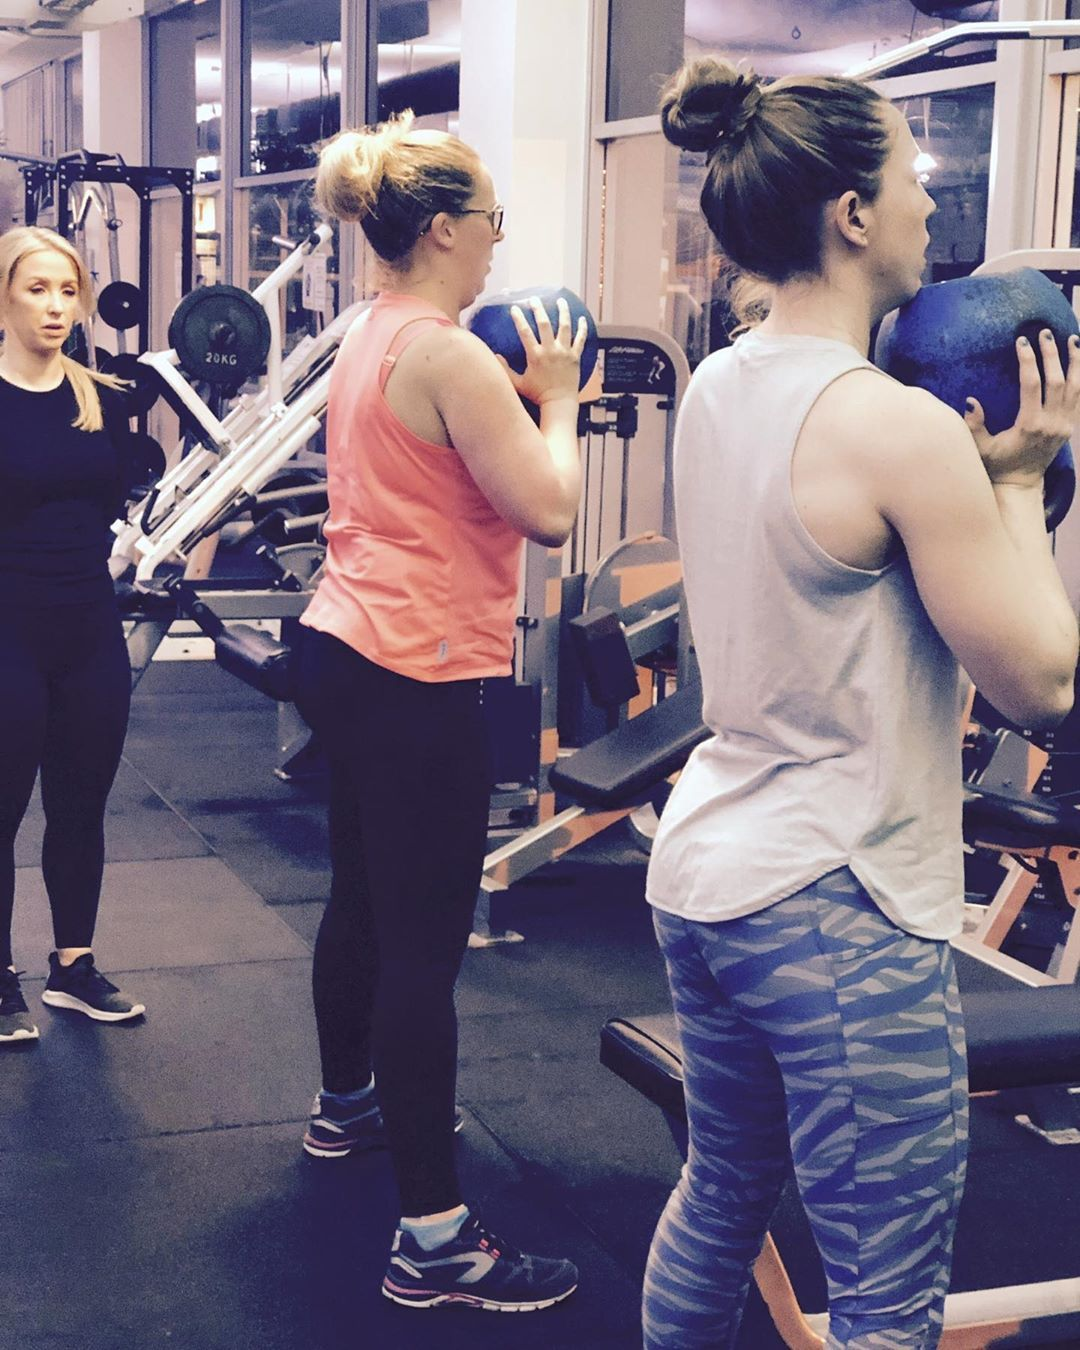 💪🏽When life gives you Mondays goblet squat your way into All Sorts with personal trainer @loveablebo...